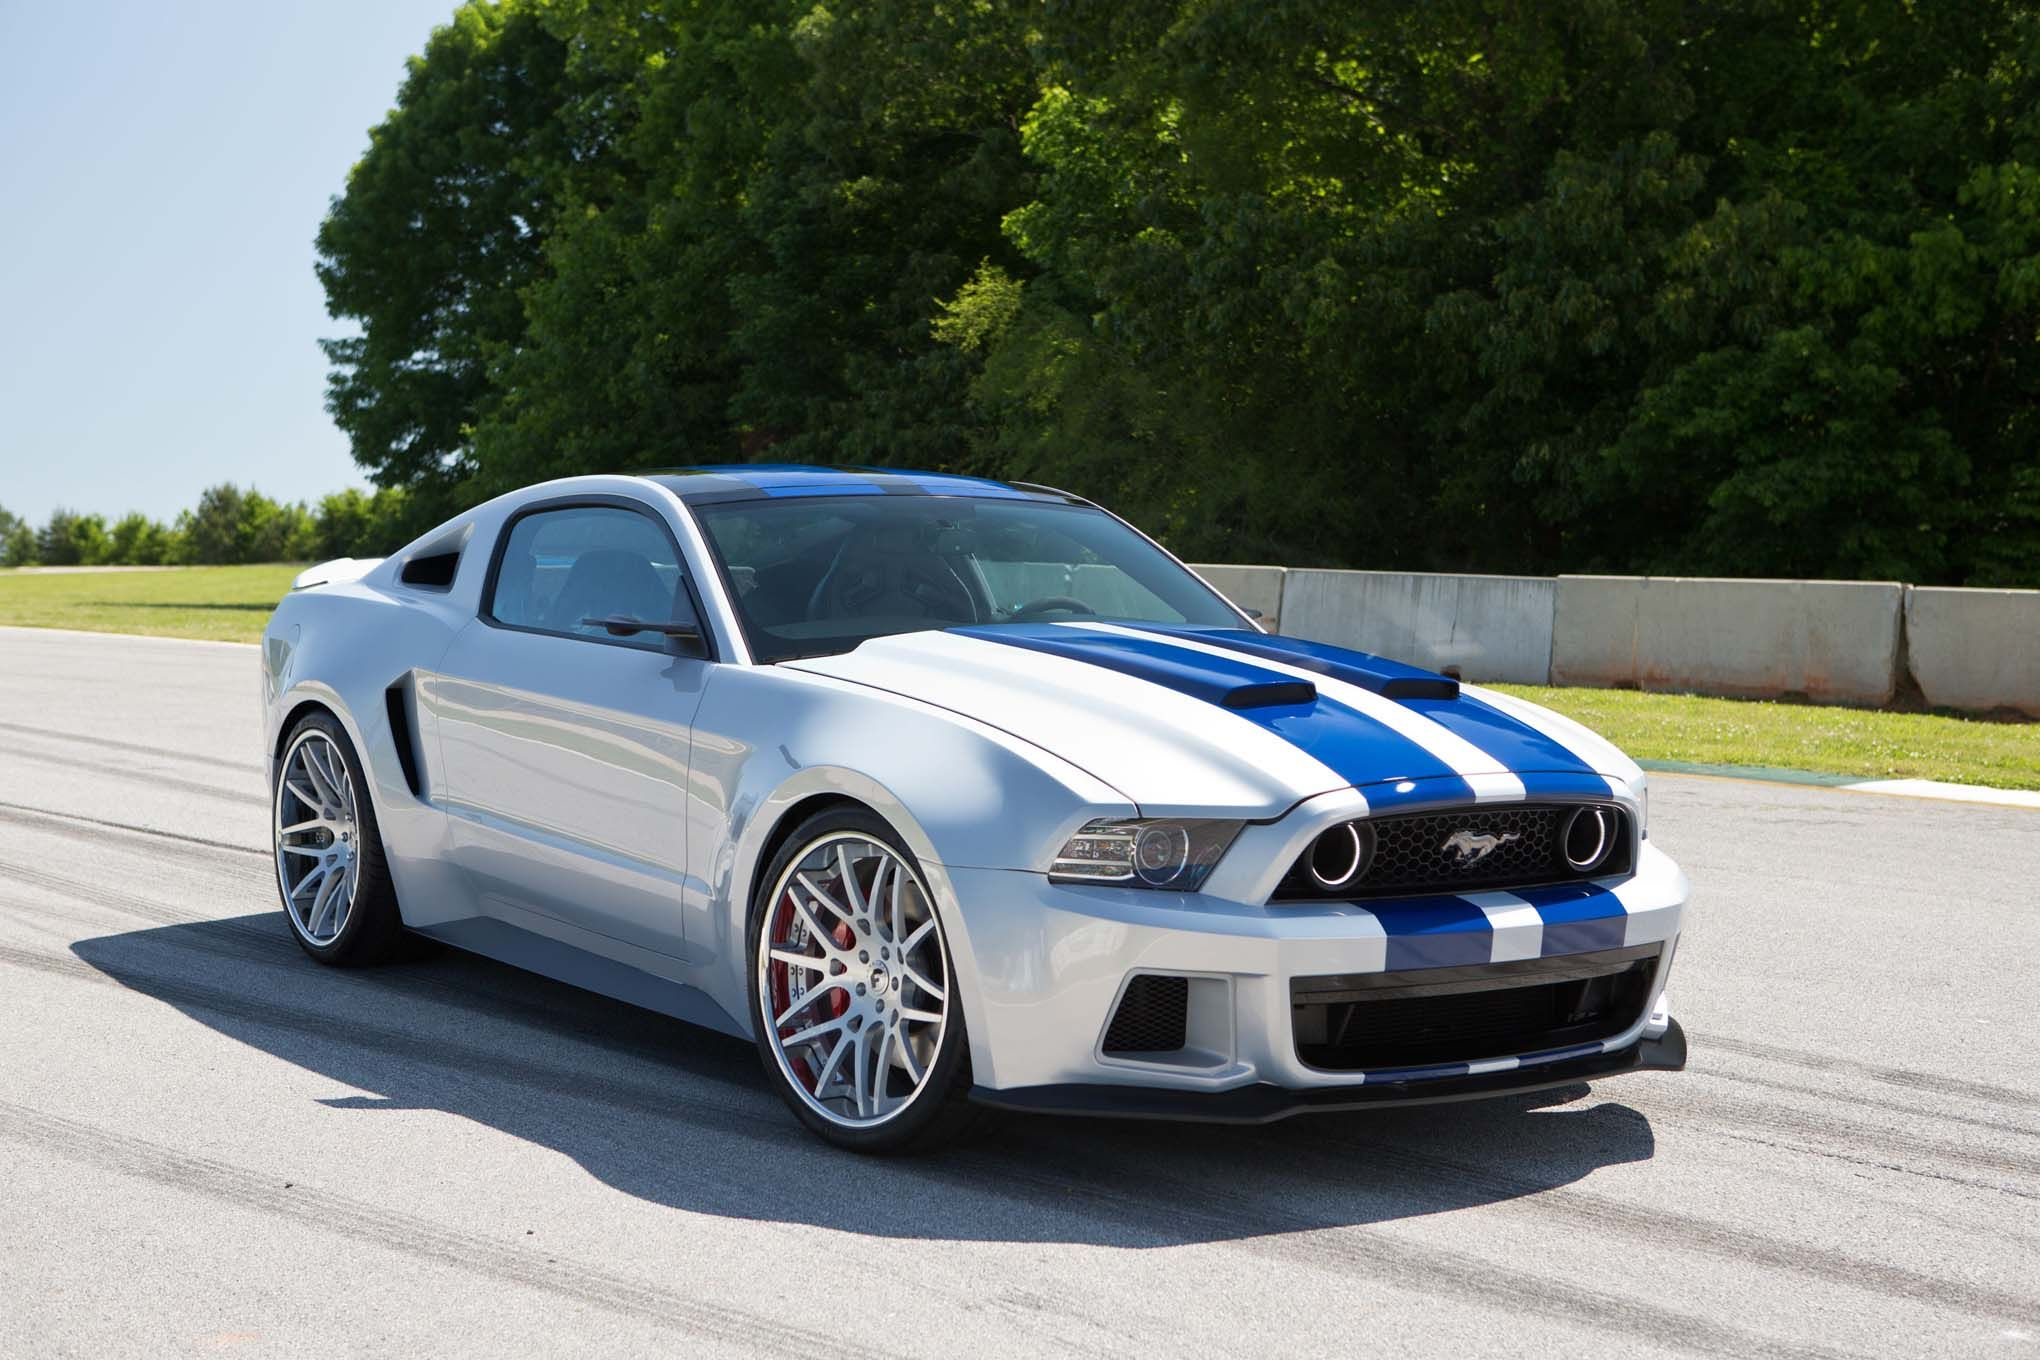 2014 Ford Mustang Shelby Gt500 White